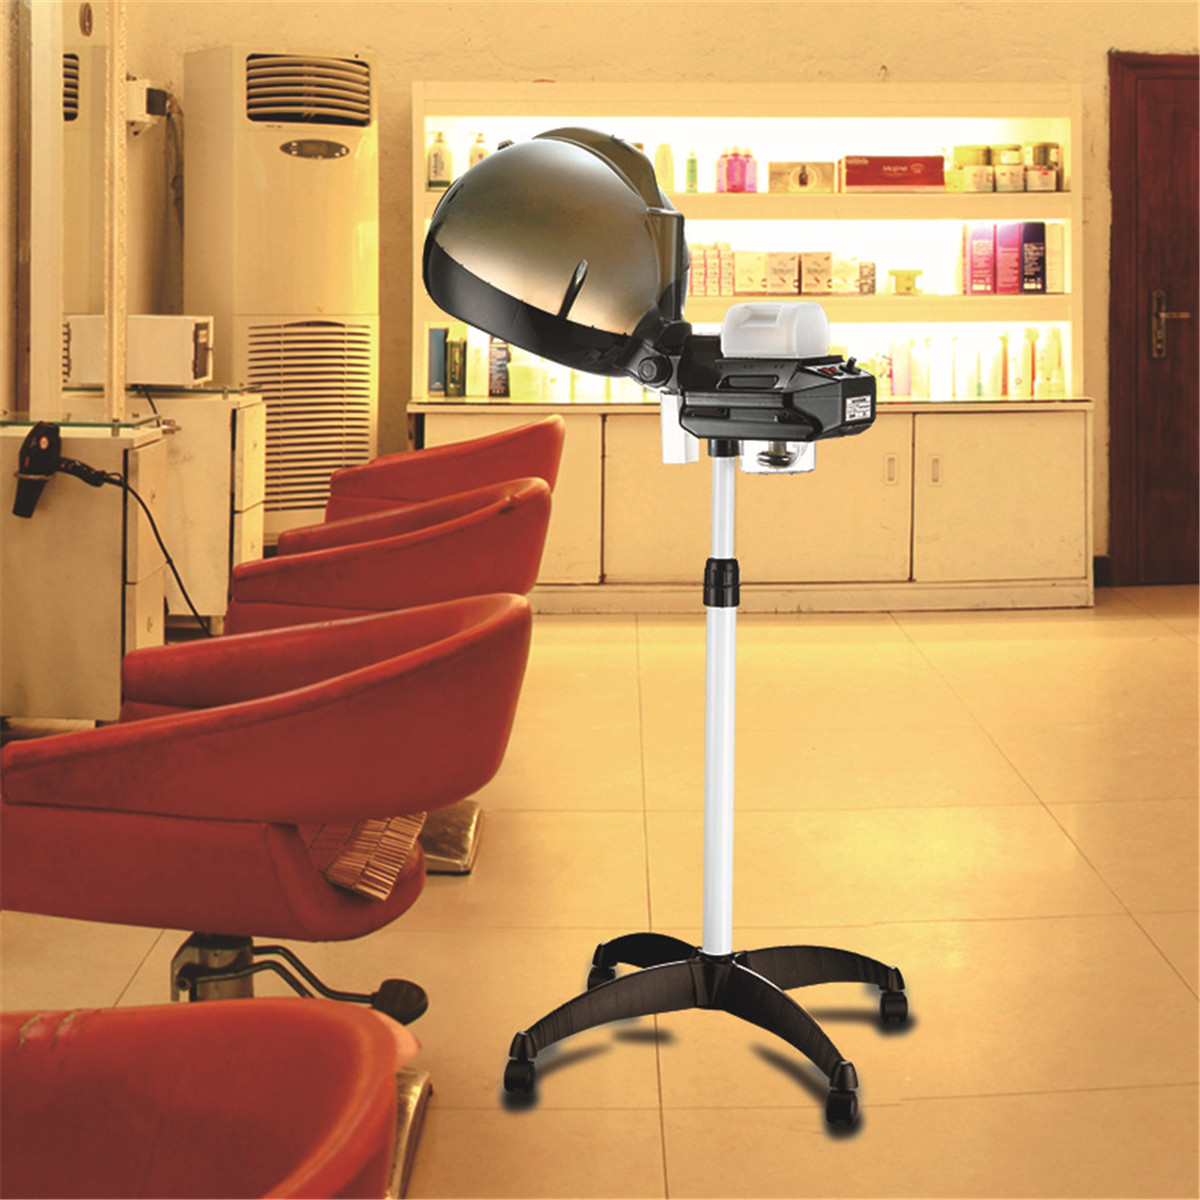 220V 650W Electric Hair Steamer Professional Salon Hair Hairdressing Care Steamer Rolling Stand Base Beauty Hood Color Machine220V 650W Electric Hair Steamer Professional Salon Hair Hairdressing Care Steamer Rolling Stand Base Beauty Hood Color Machine